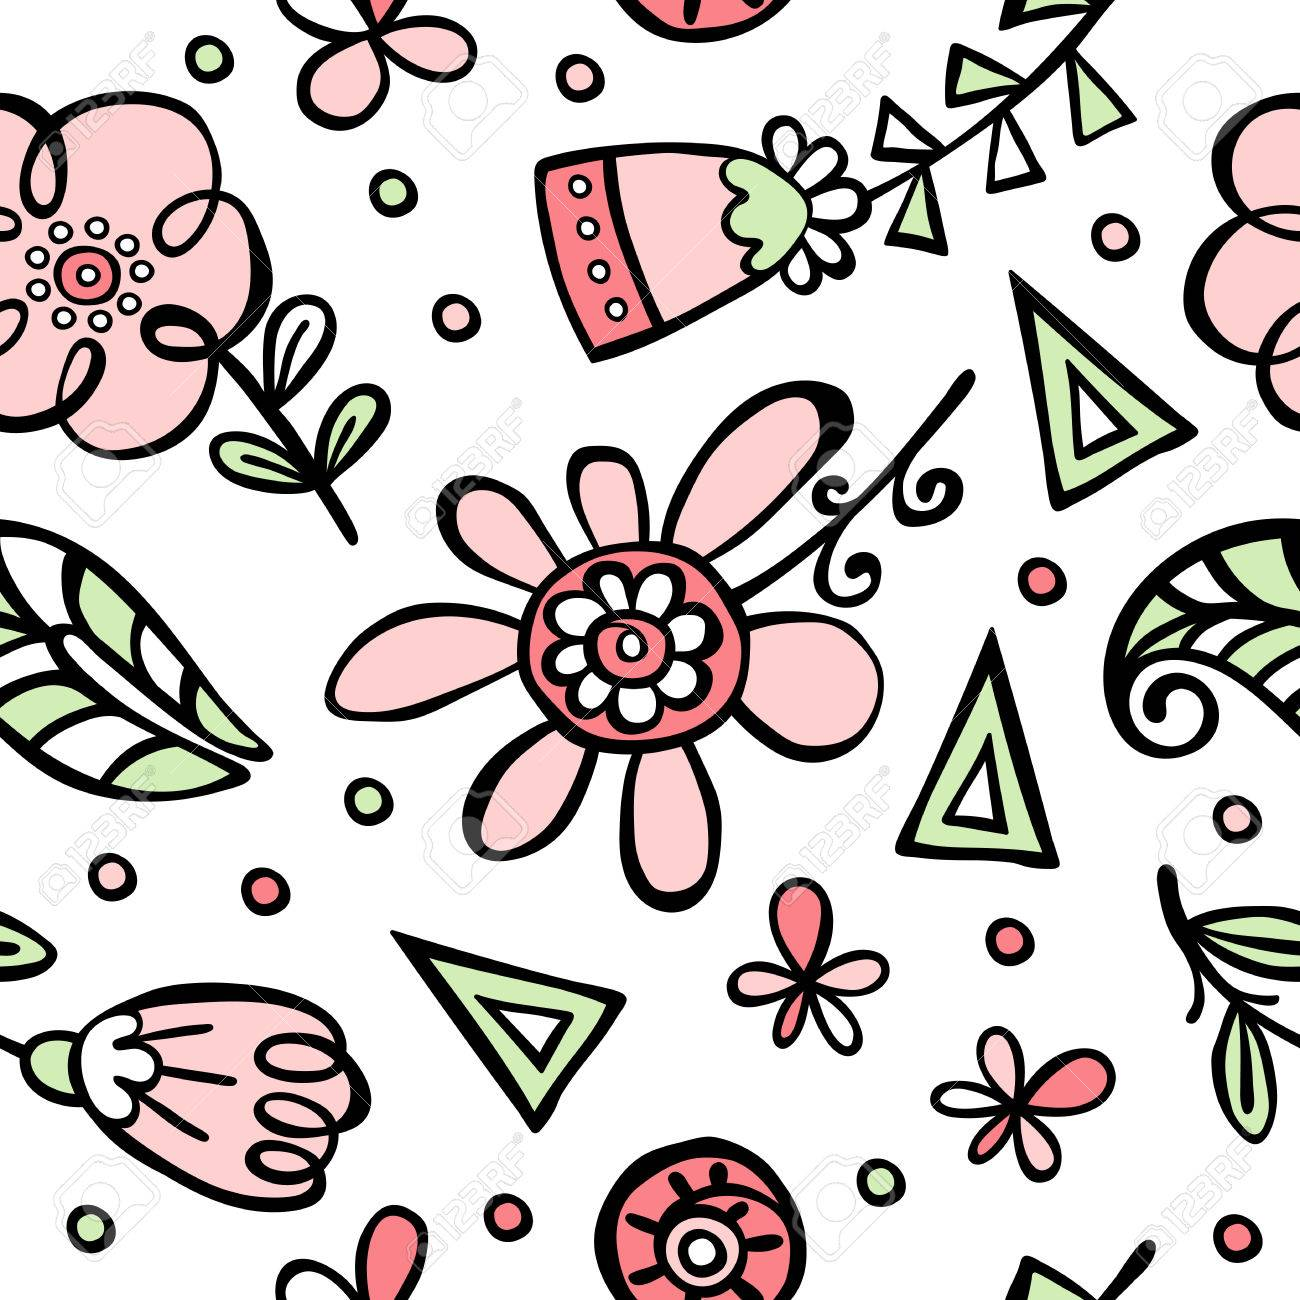 flower pattern flowers and leaves vector seamless pattern rh 123rf com vector flower pattern free download vector flower pattern free download